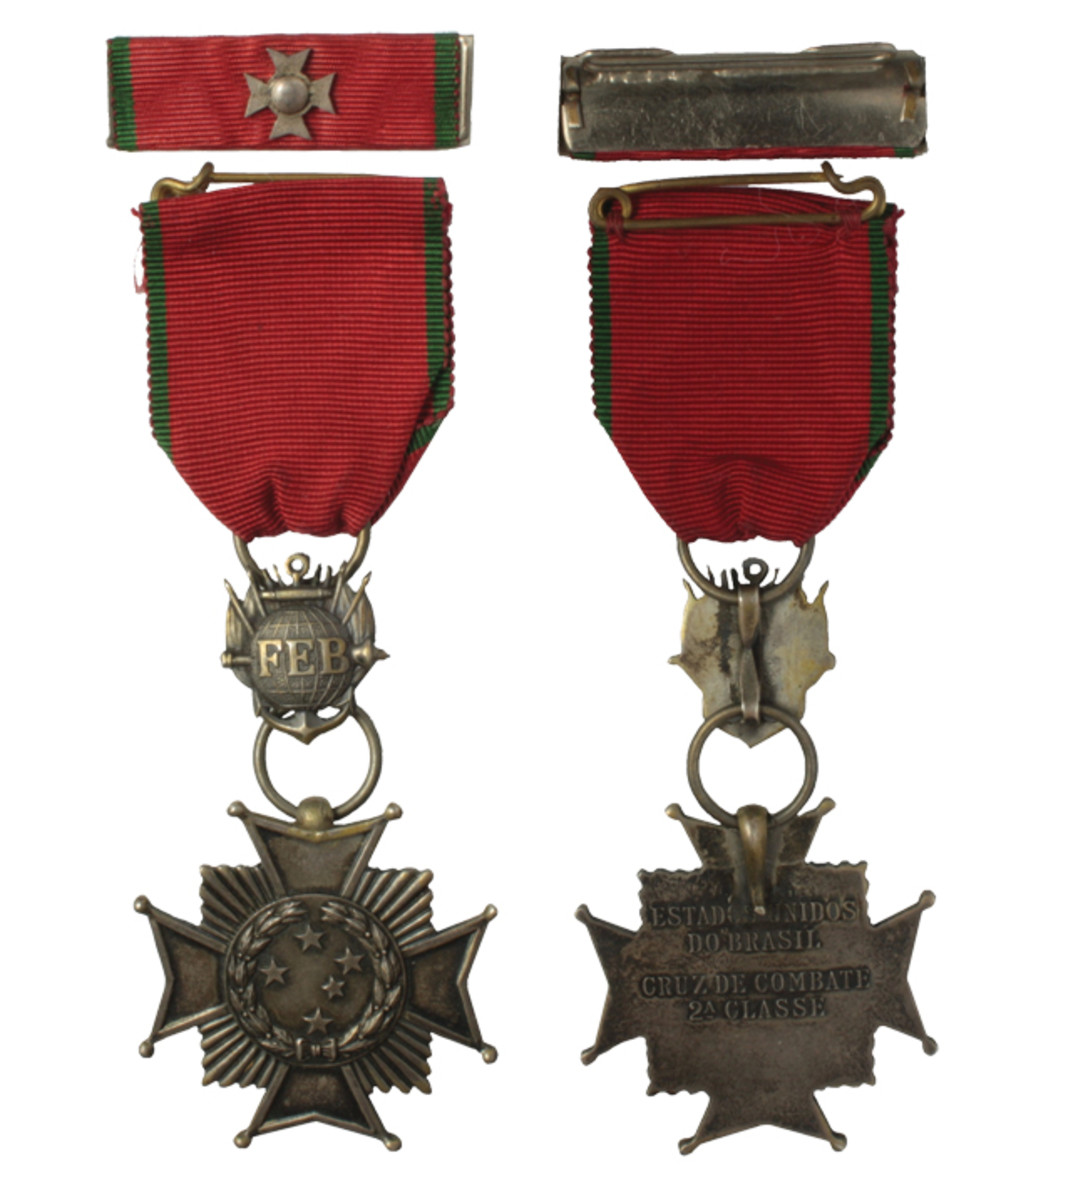 Combat Cross 2nd Class (silvered finish). The ribbon bar has a small cross device in silver finish.